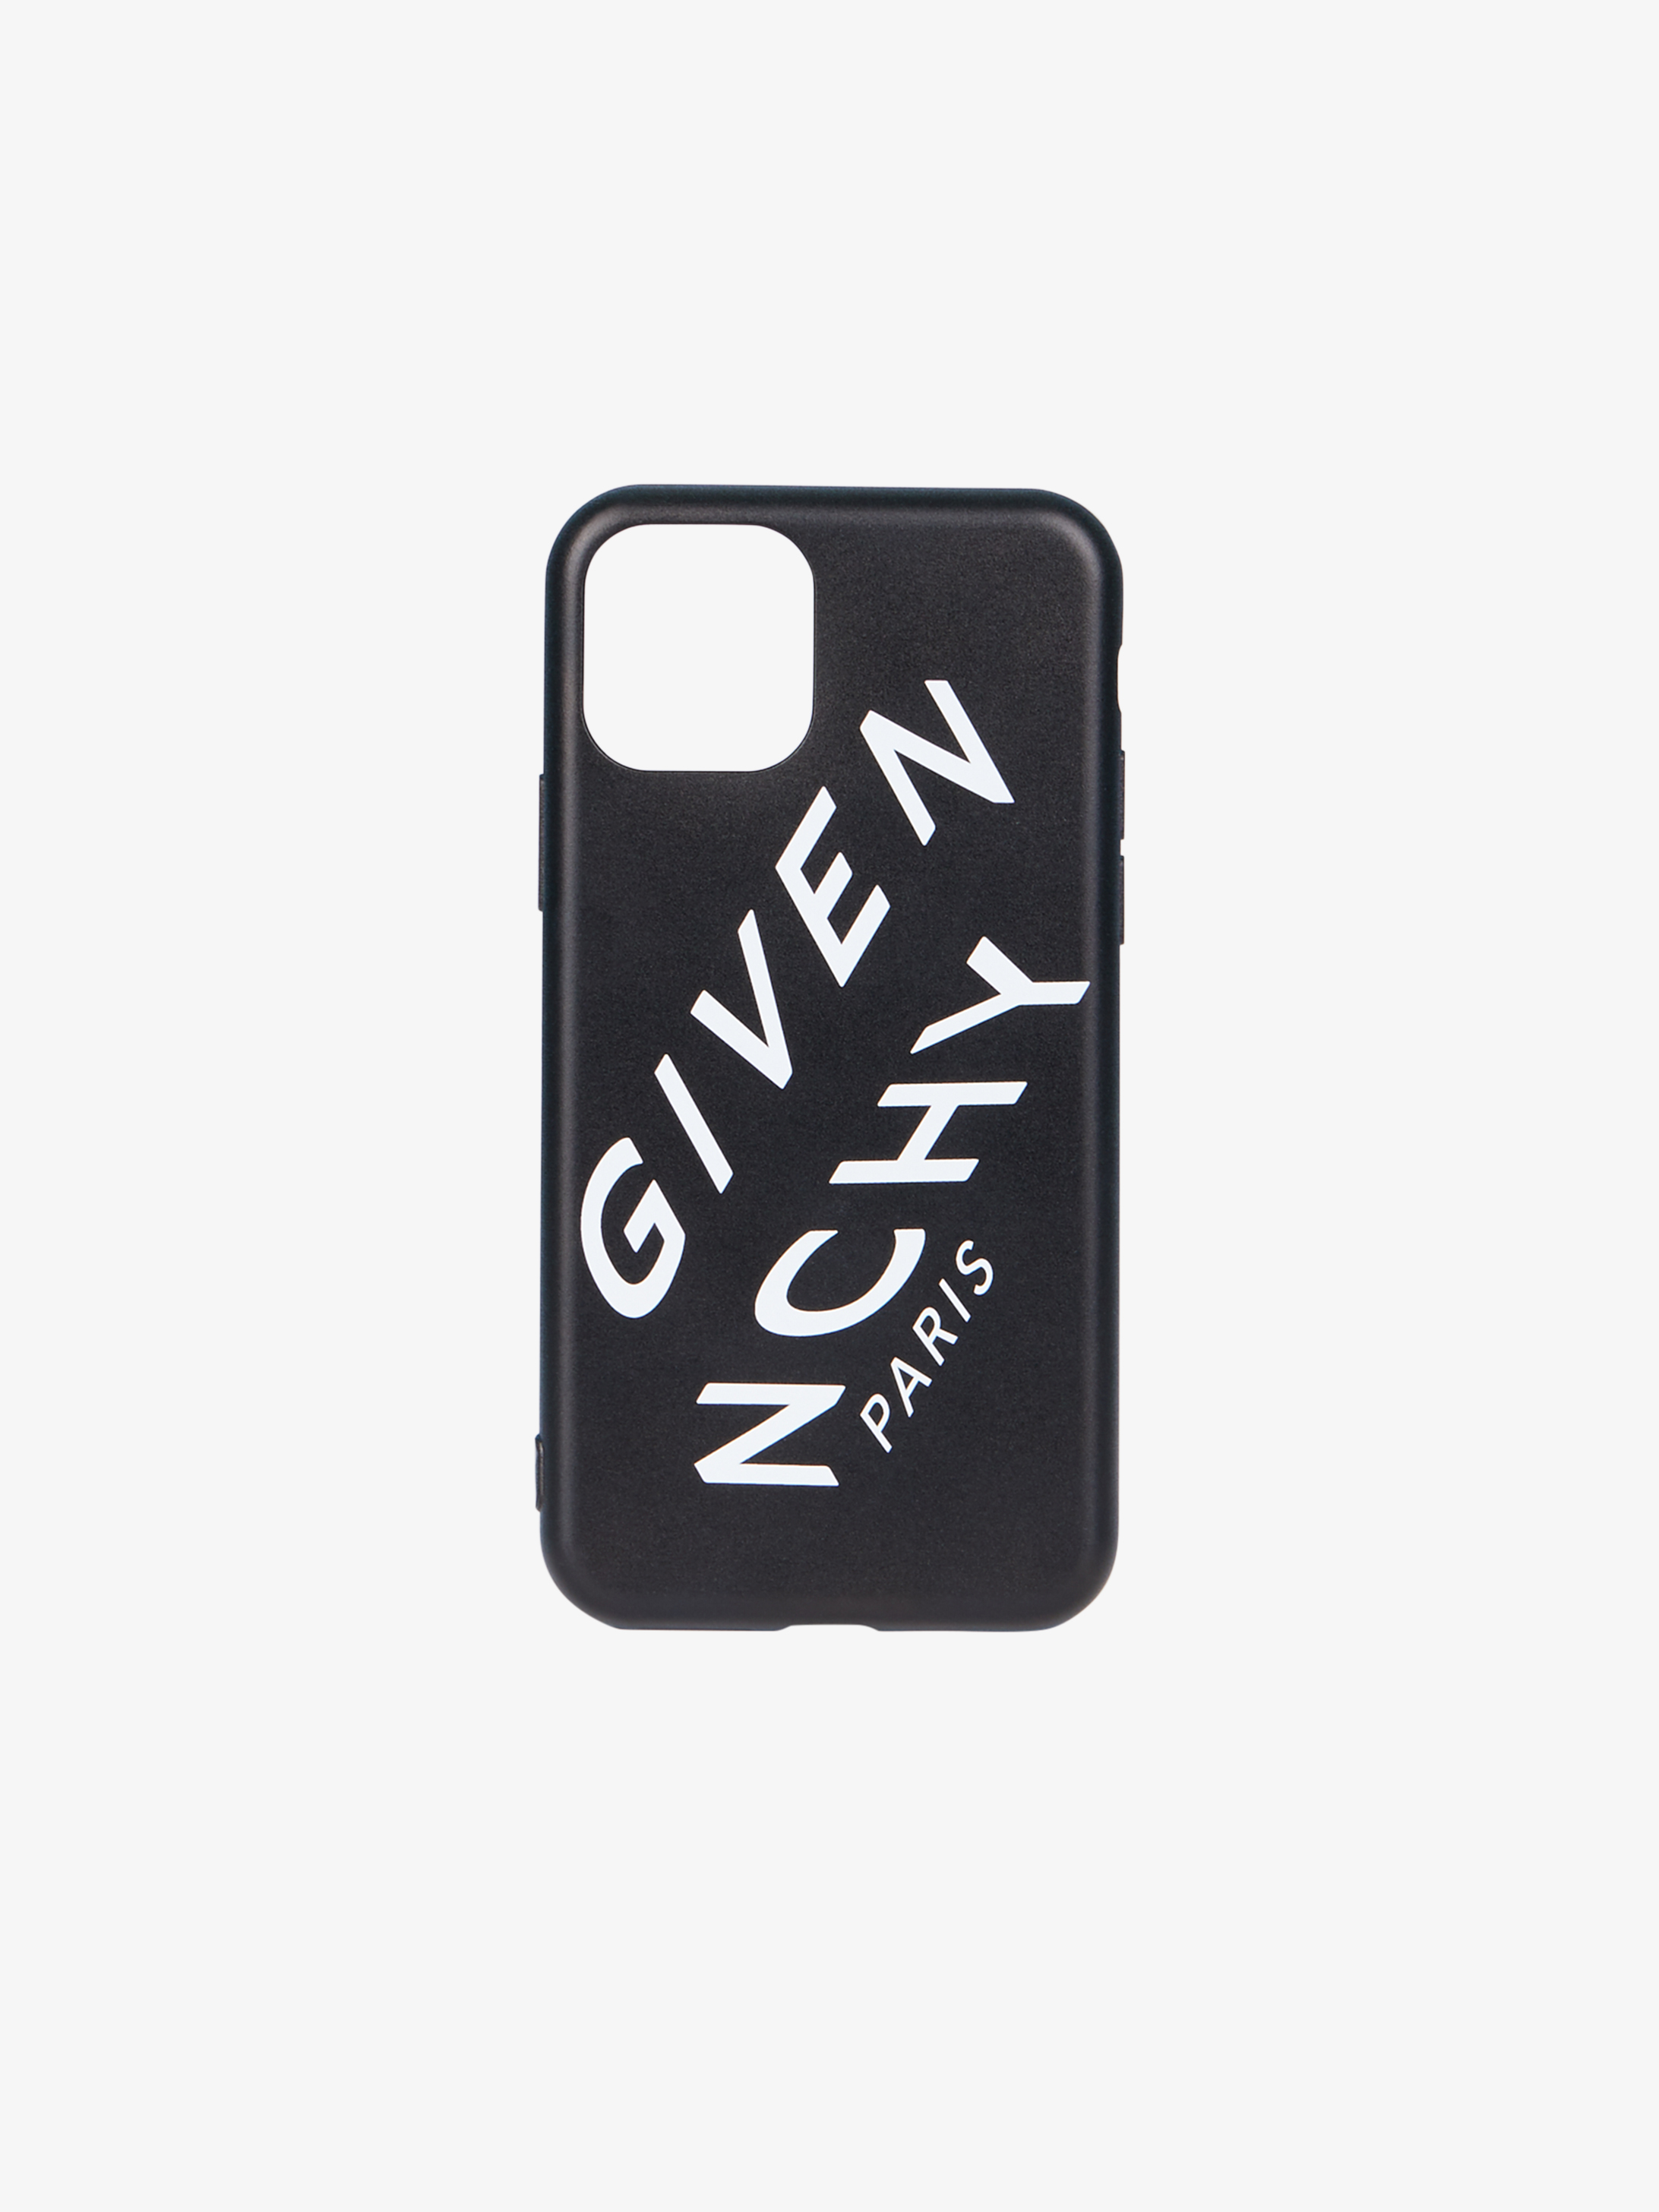 GIVENCHY Refracted iPhone 11 case